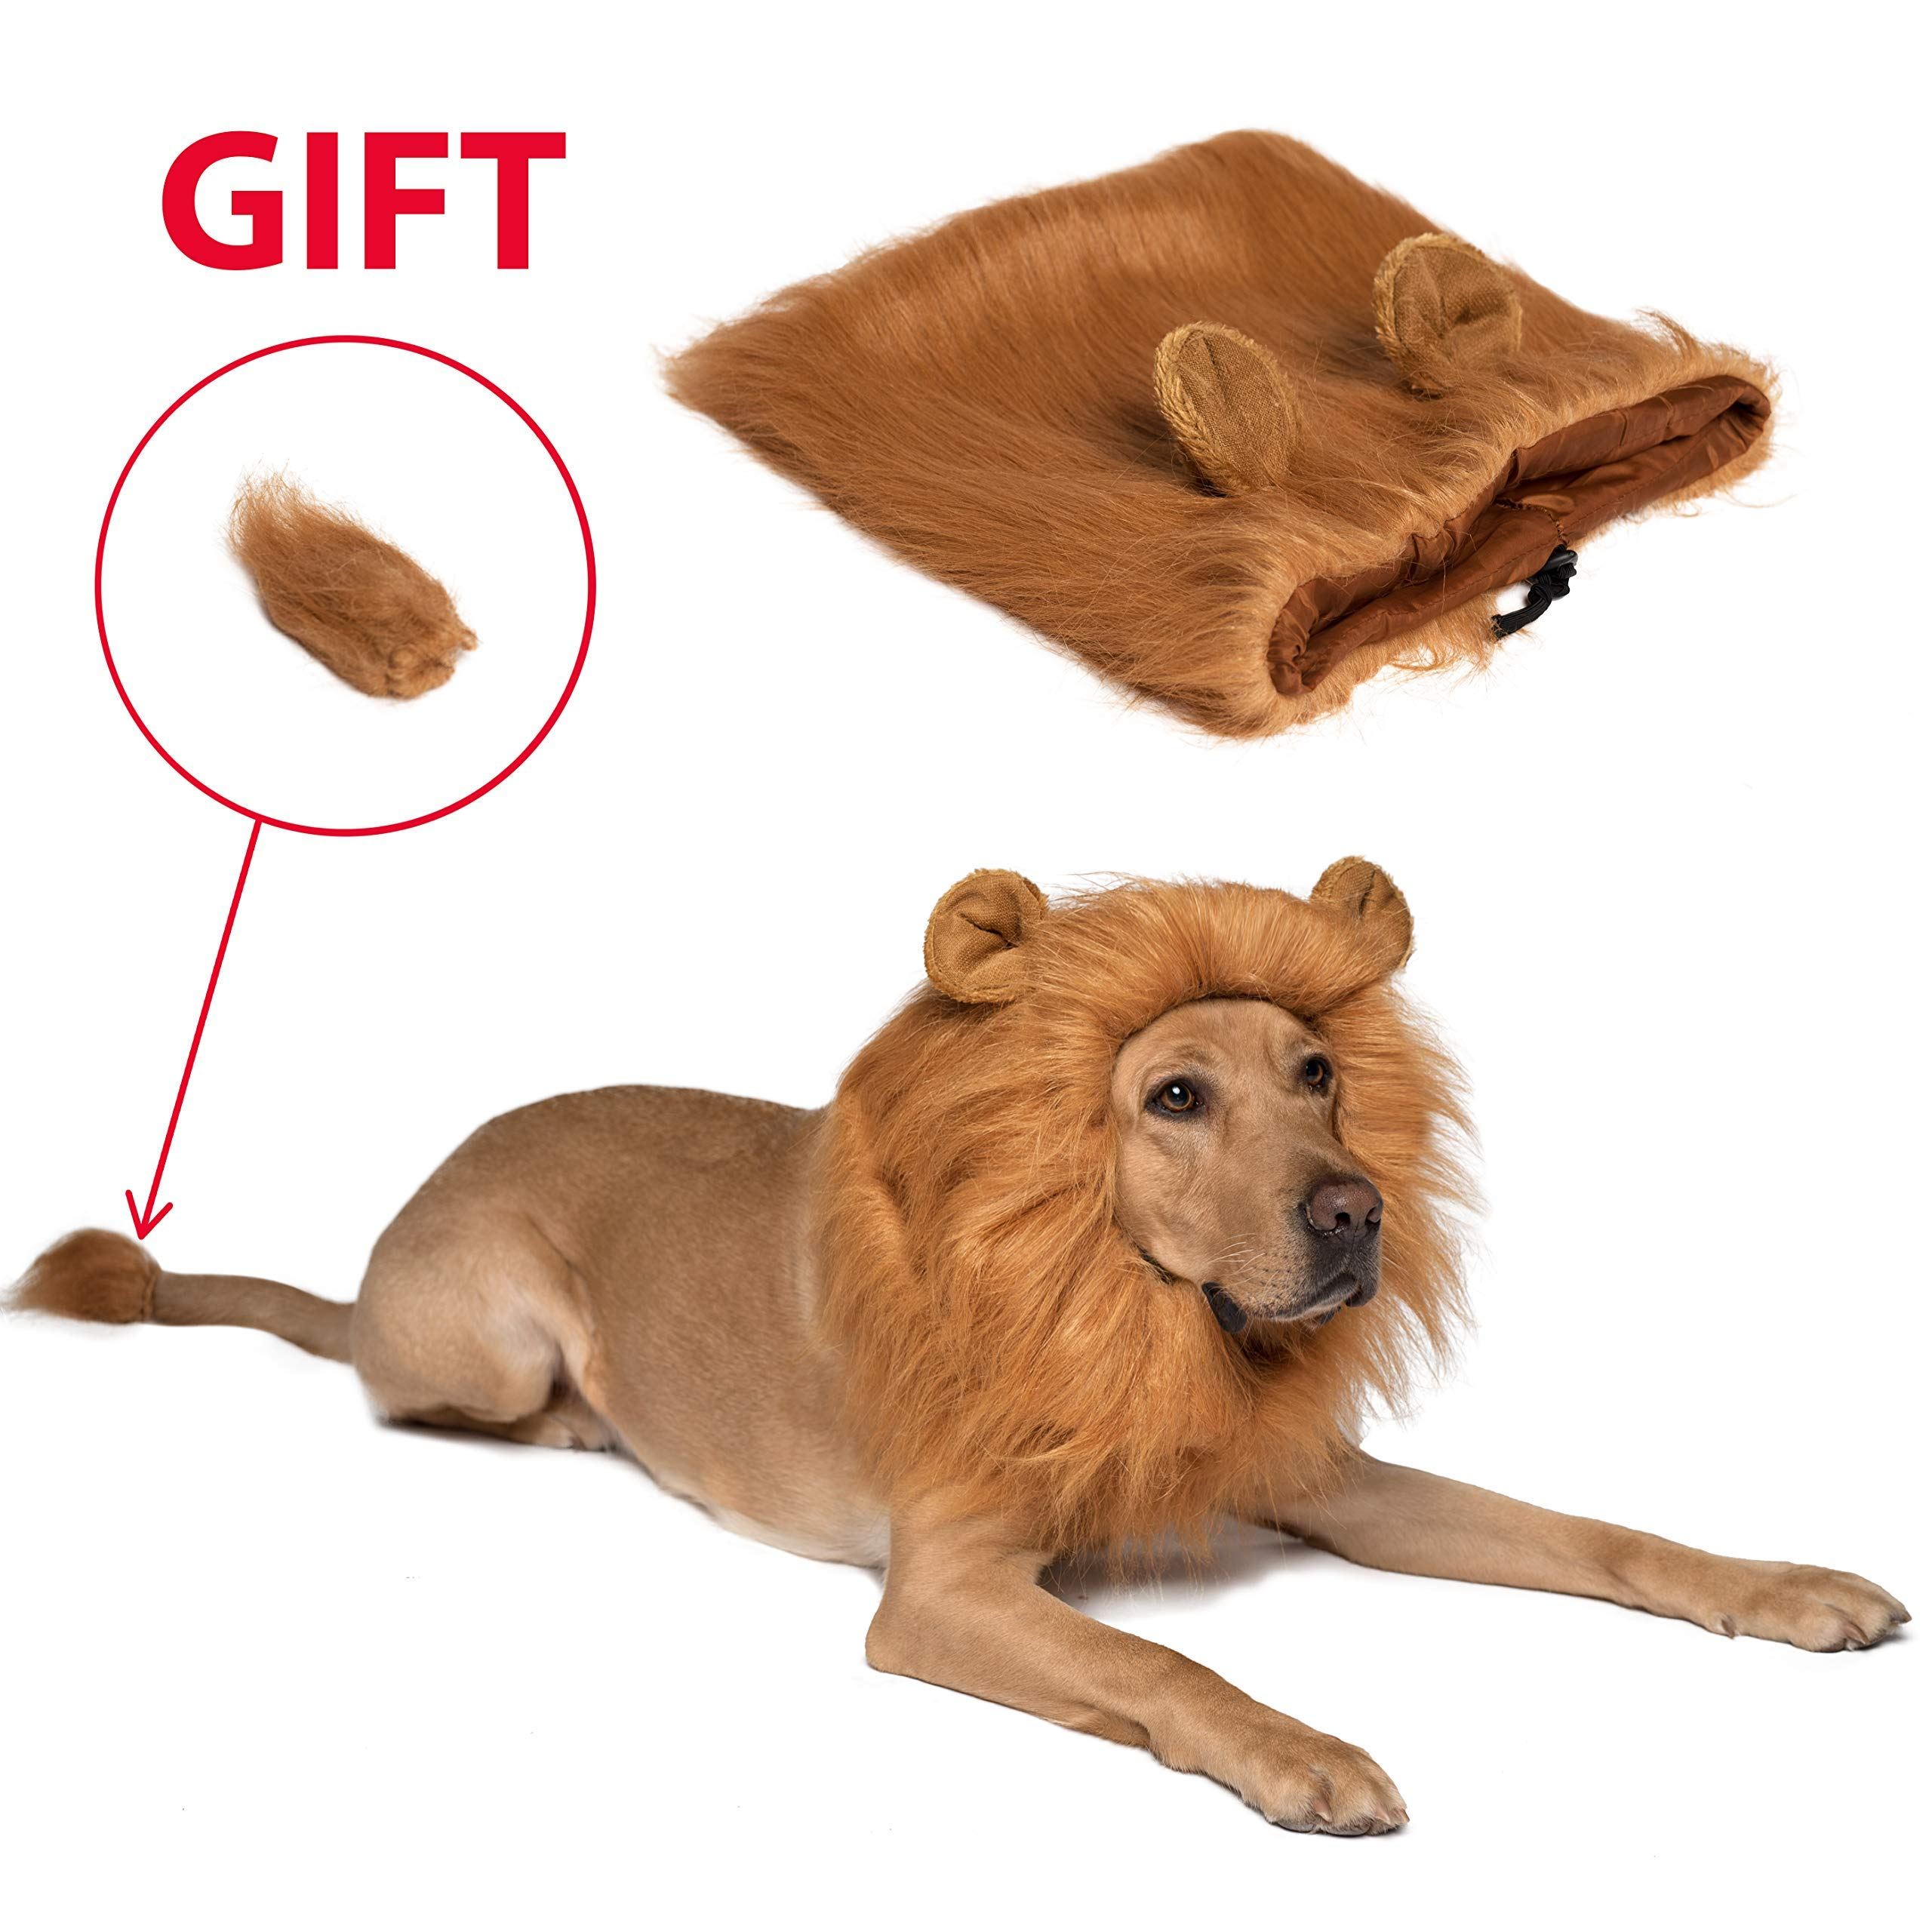 Dog Lion Mane Dog Wig - Pet Costumes for Large Dogs and Medium Dogs - Adjustable Pet Costume Lion Wig for Halloween with Gift - Lion Tail by Fluffy Family